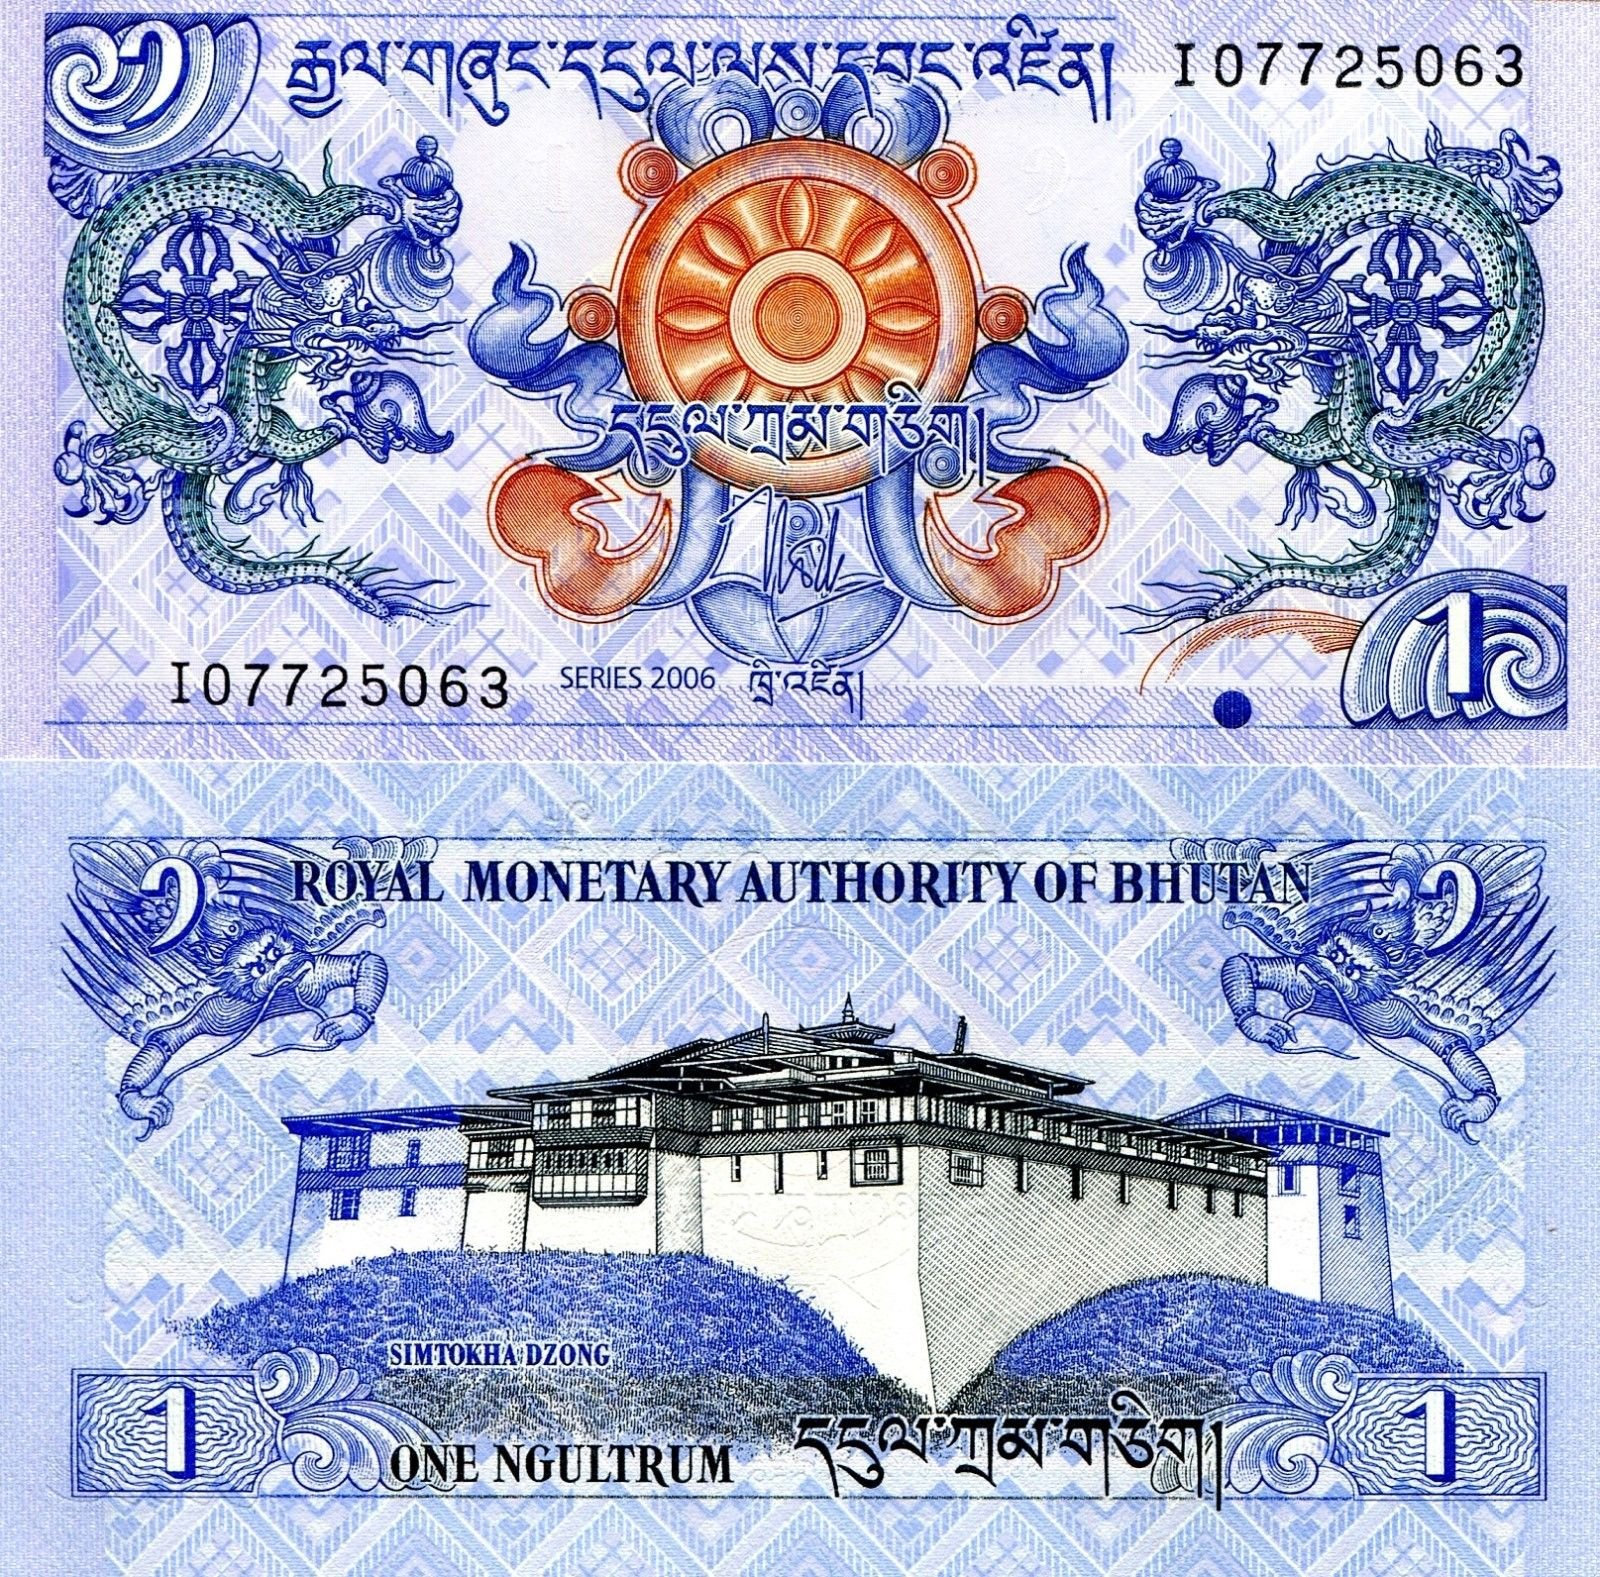 1 Banknote BHUTAN-World Paper Money UNC Currency p-27a Dragons, Genuine Rare, Suitable For collector